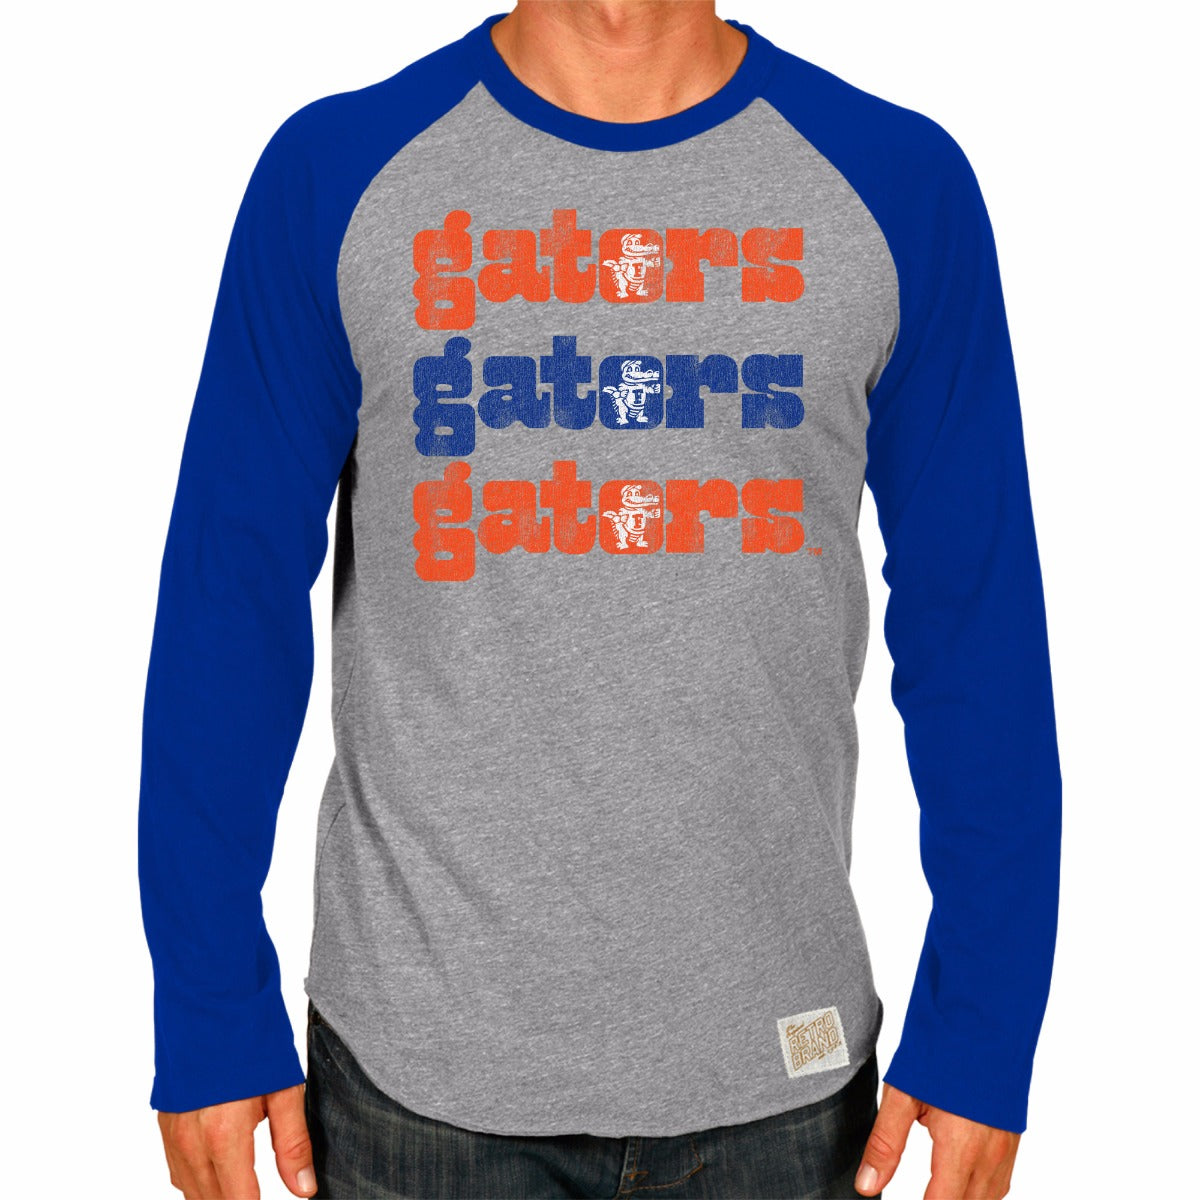 Florida Gators Men's Long Sleeve Raglan Baseball Tee